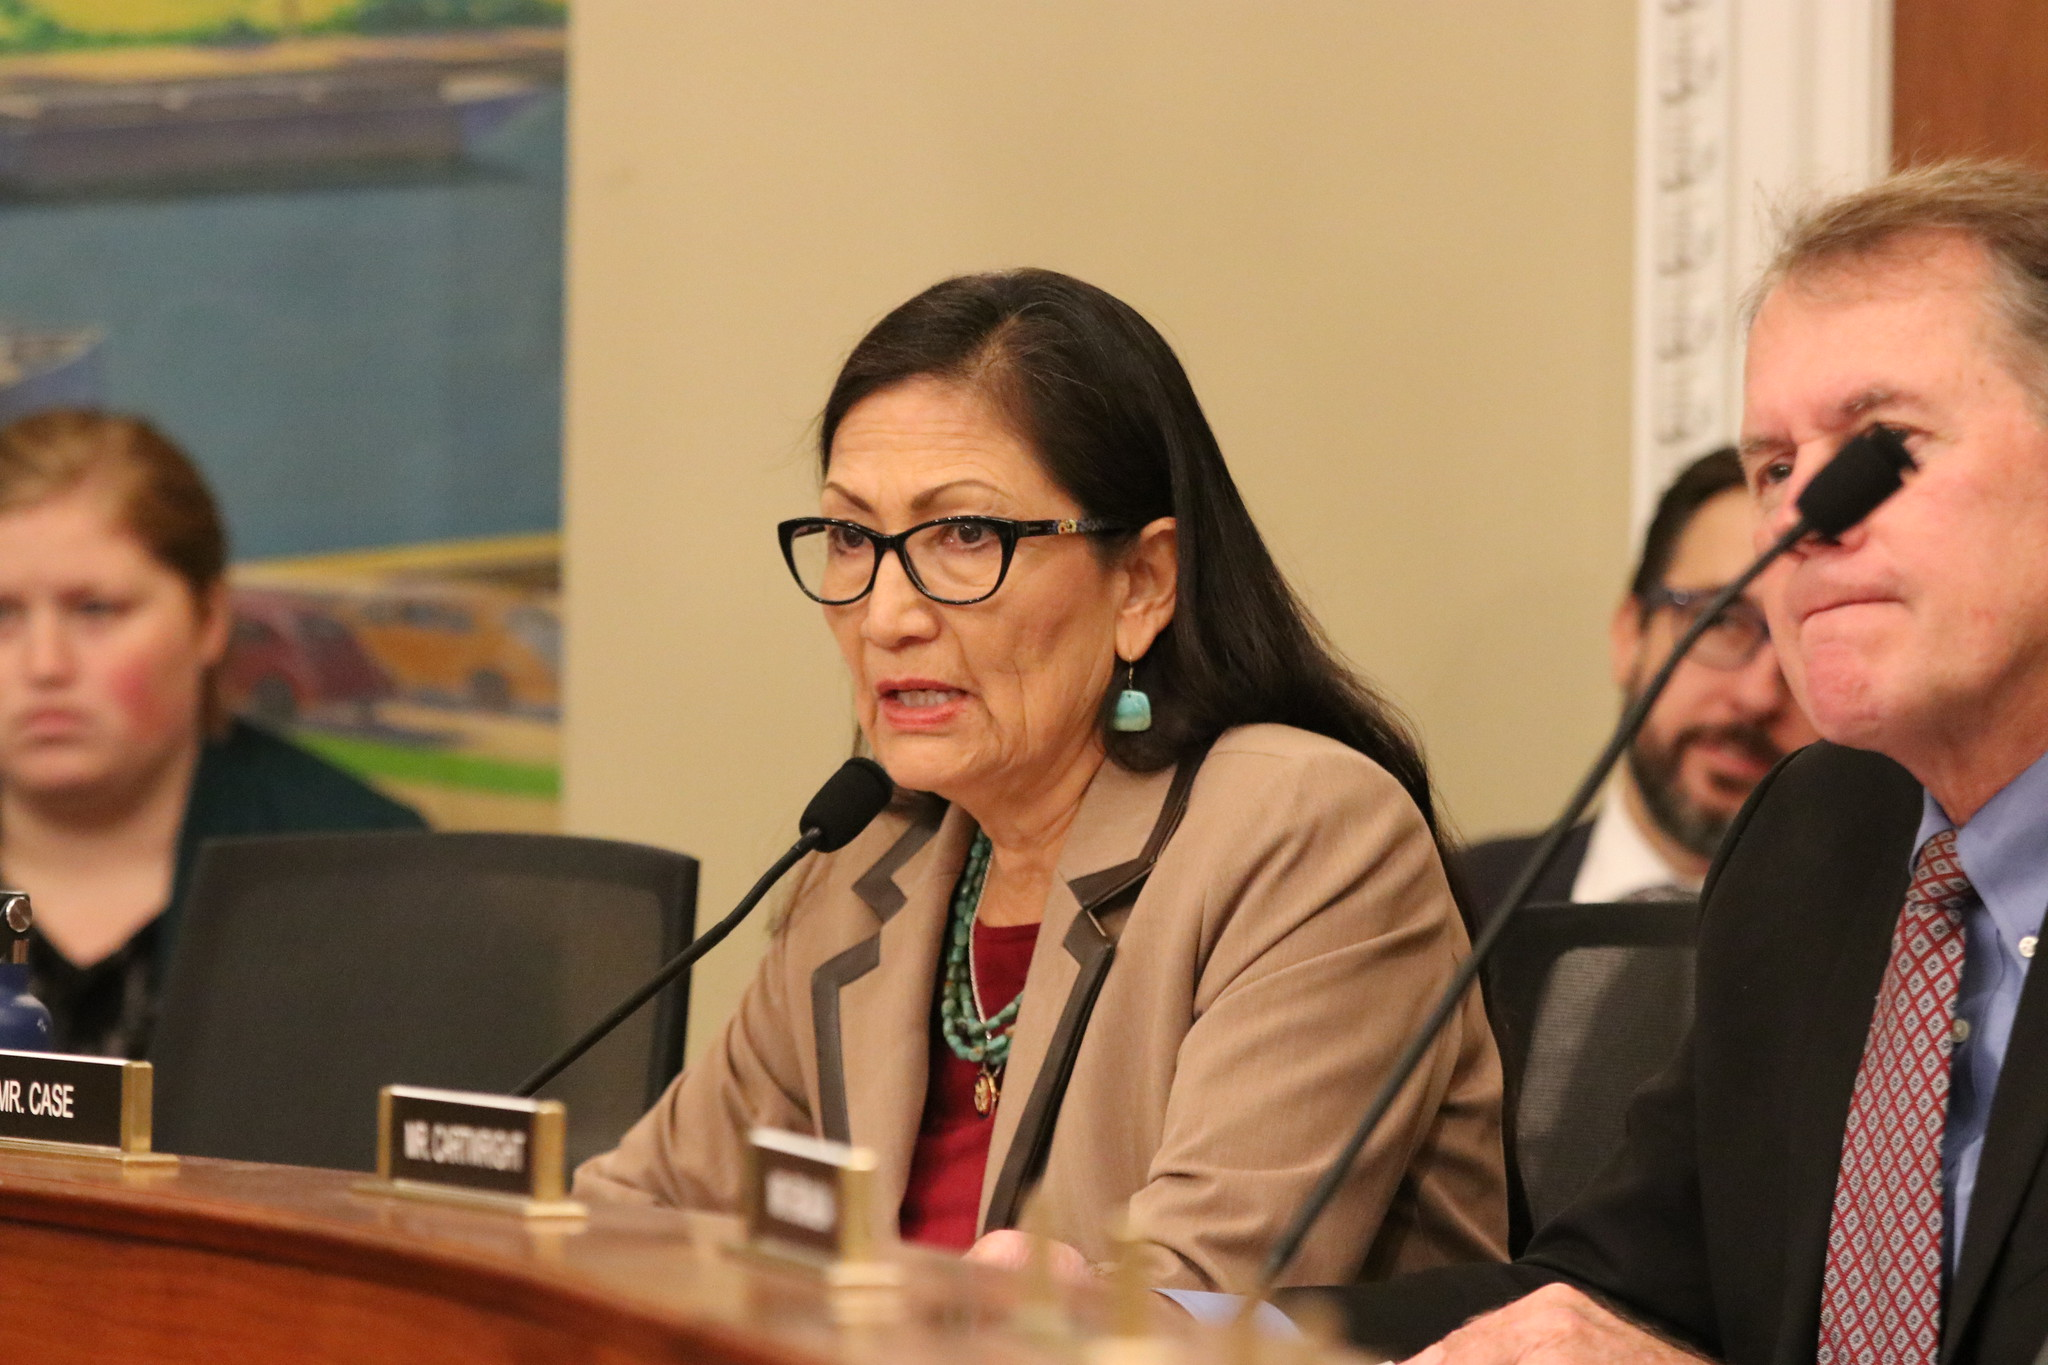 Broken Promises Report: Examining the Chronic Federal Funding Shortfalls in Indian Country